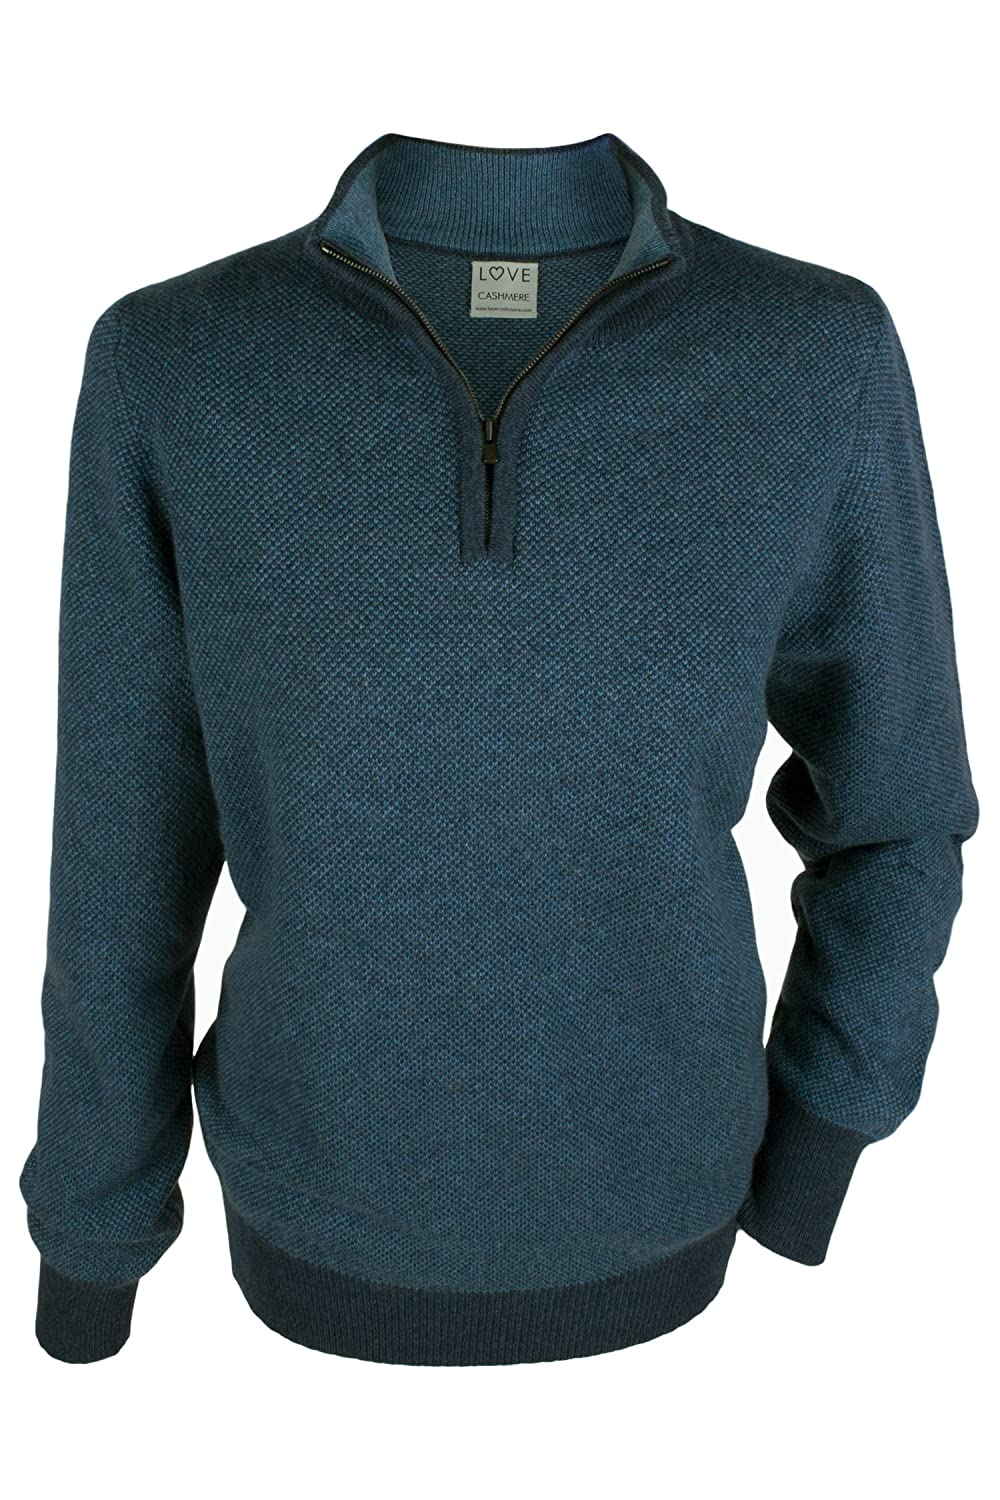 Mens Birdseye 100% Cashmere Zip Neck Sweater - made in Scotland by Love Cashmere RRP 锟